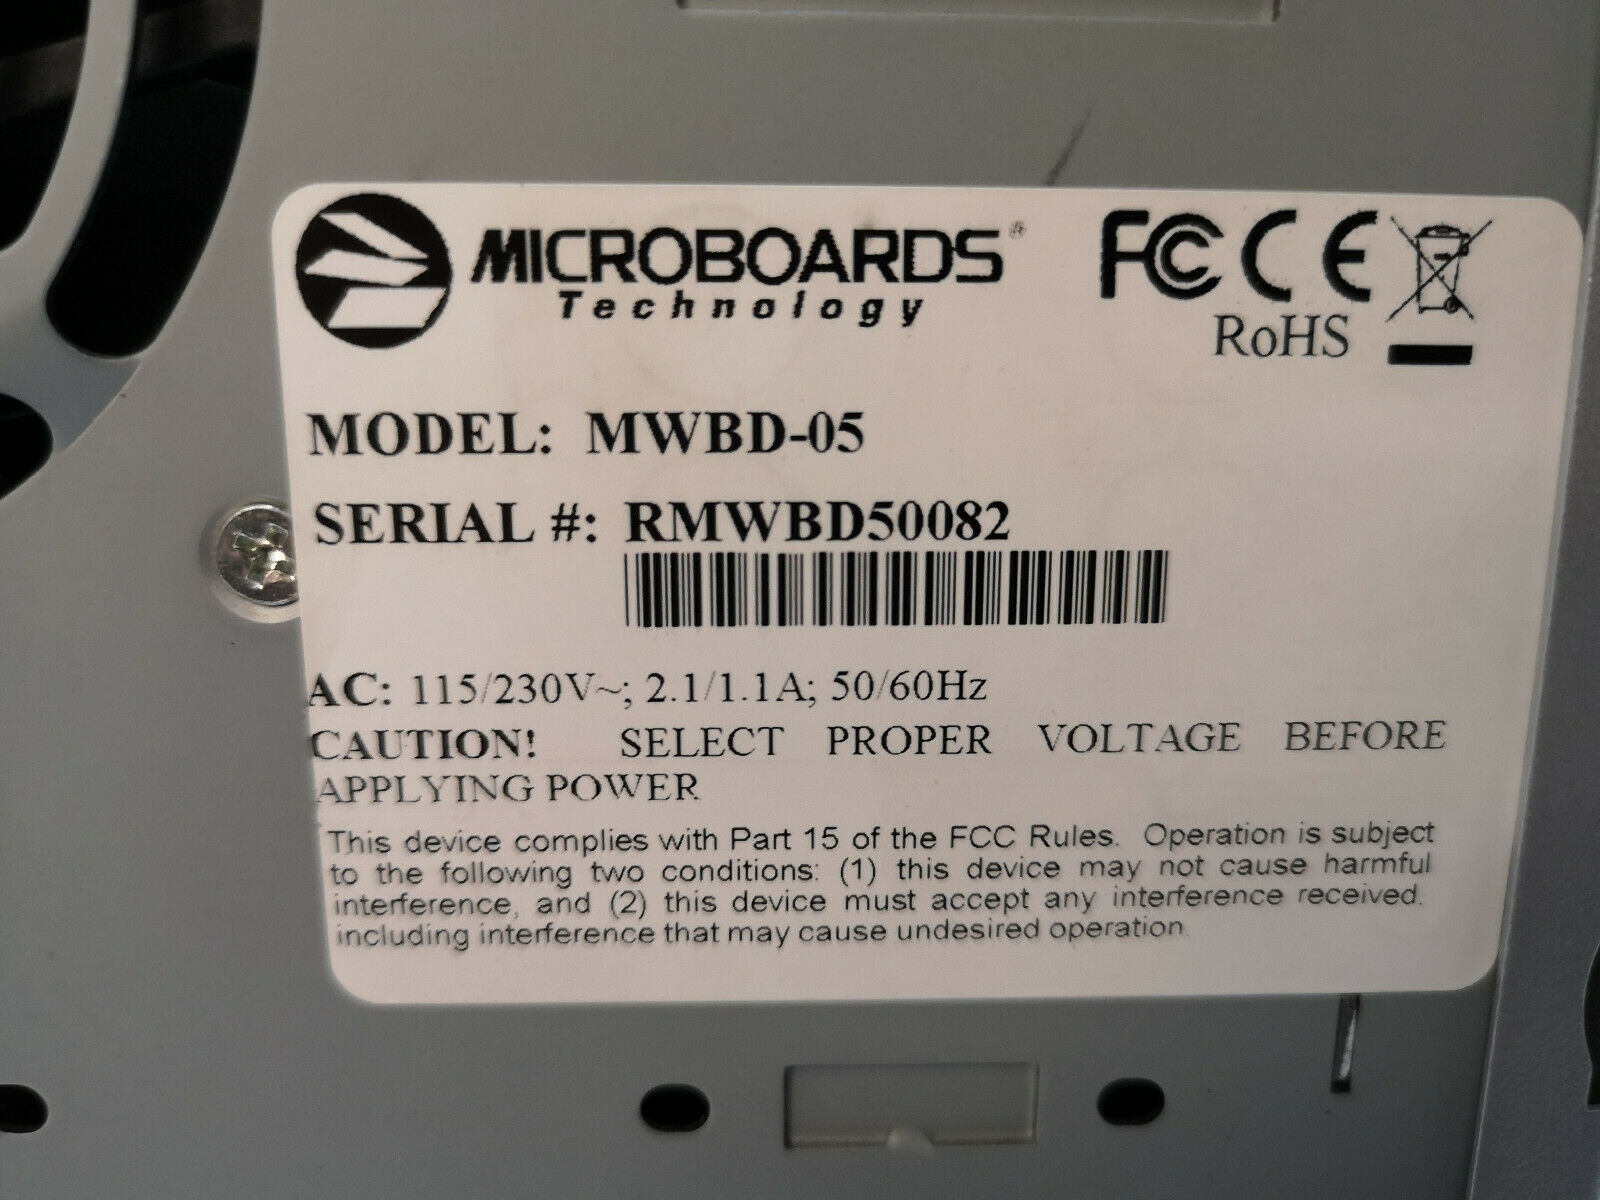 MicroBoards MWBD-05